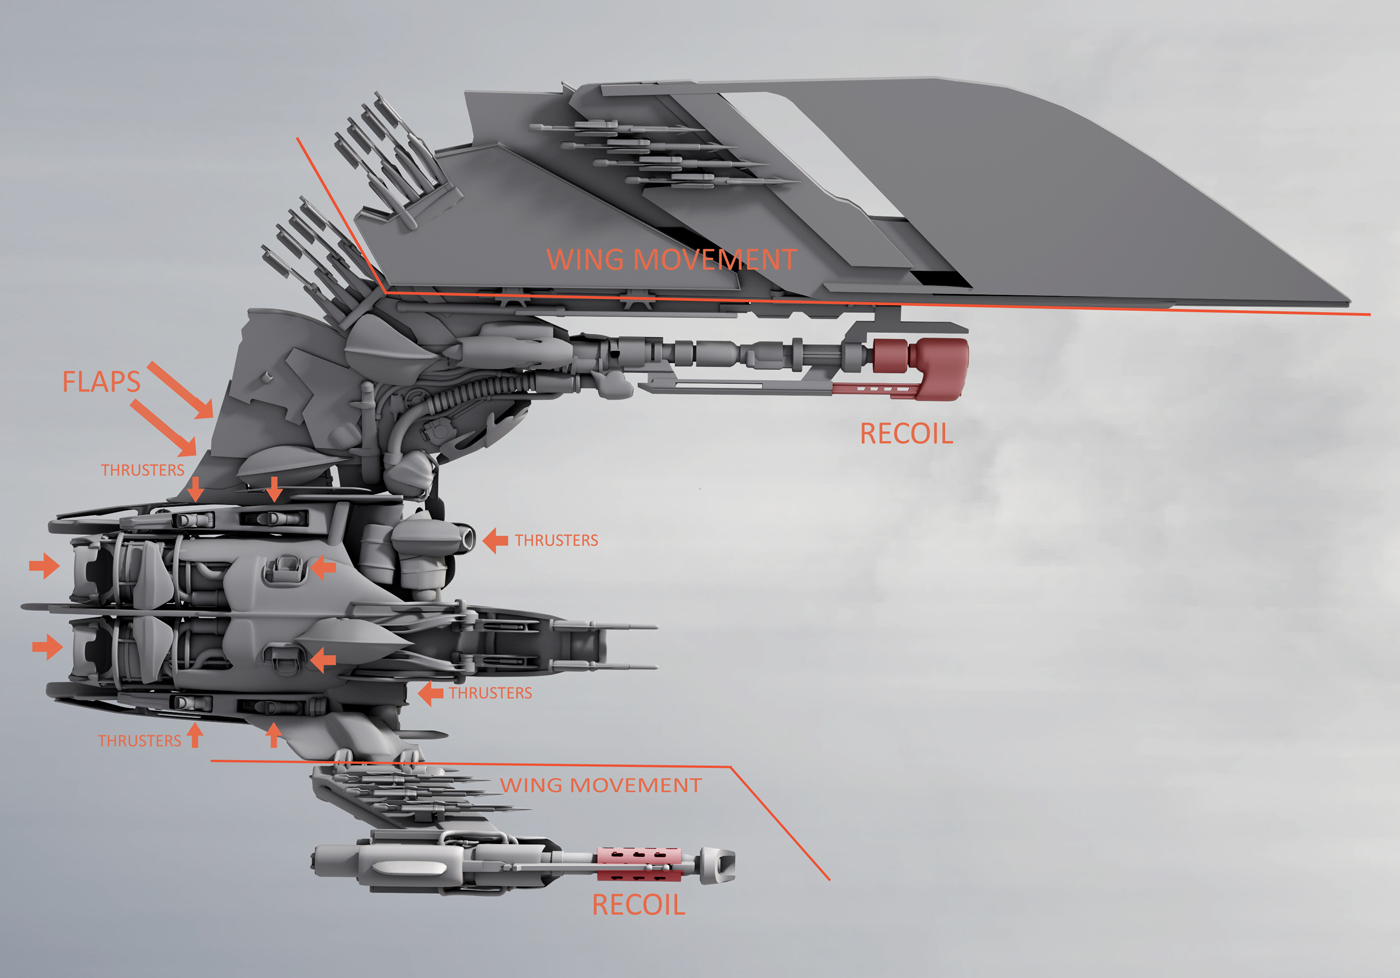 Enemy fighter - mechanical detail